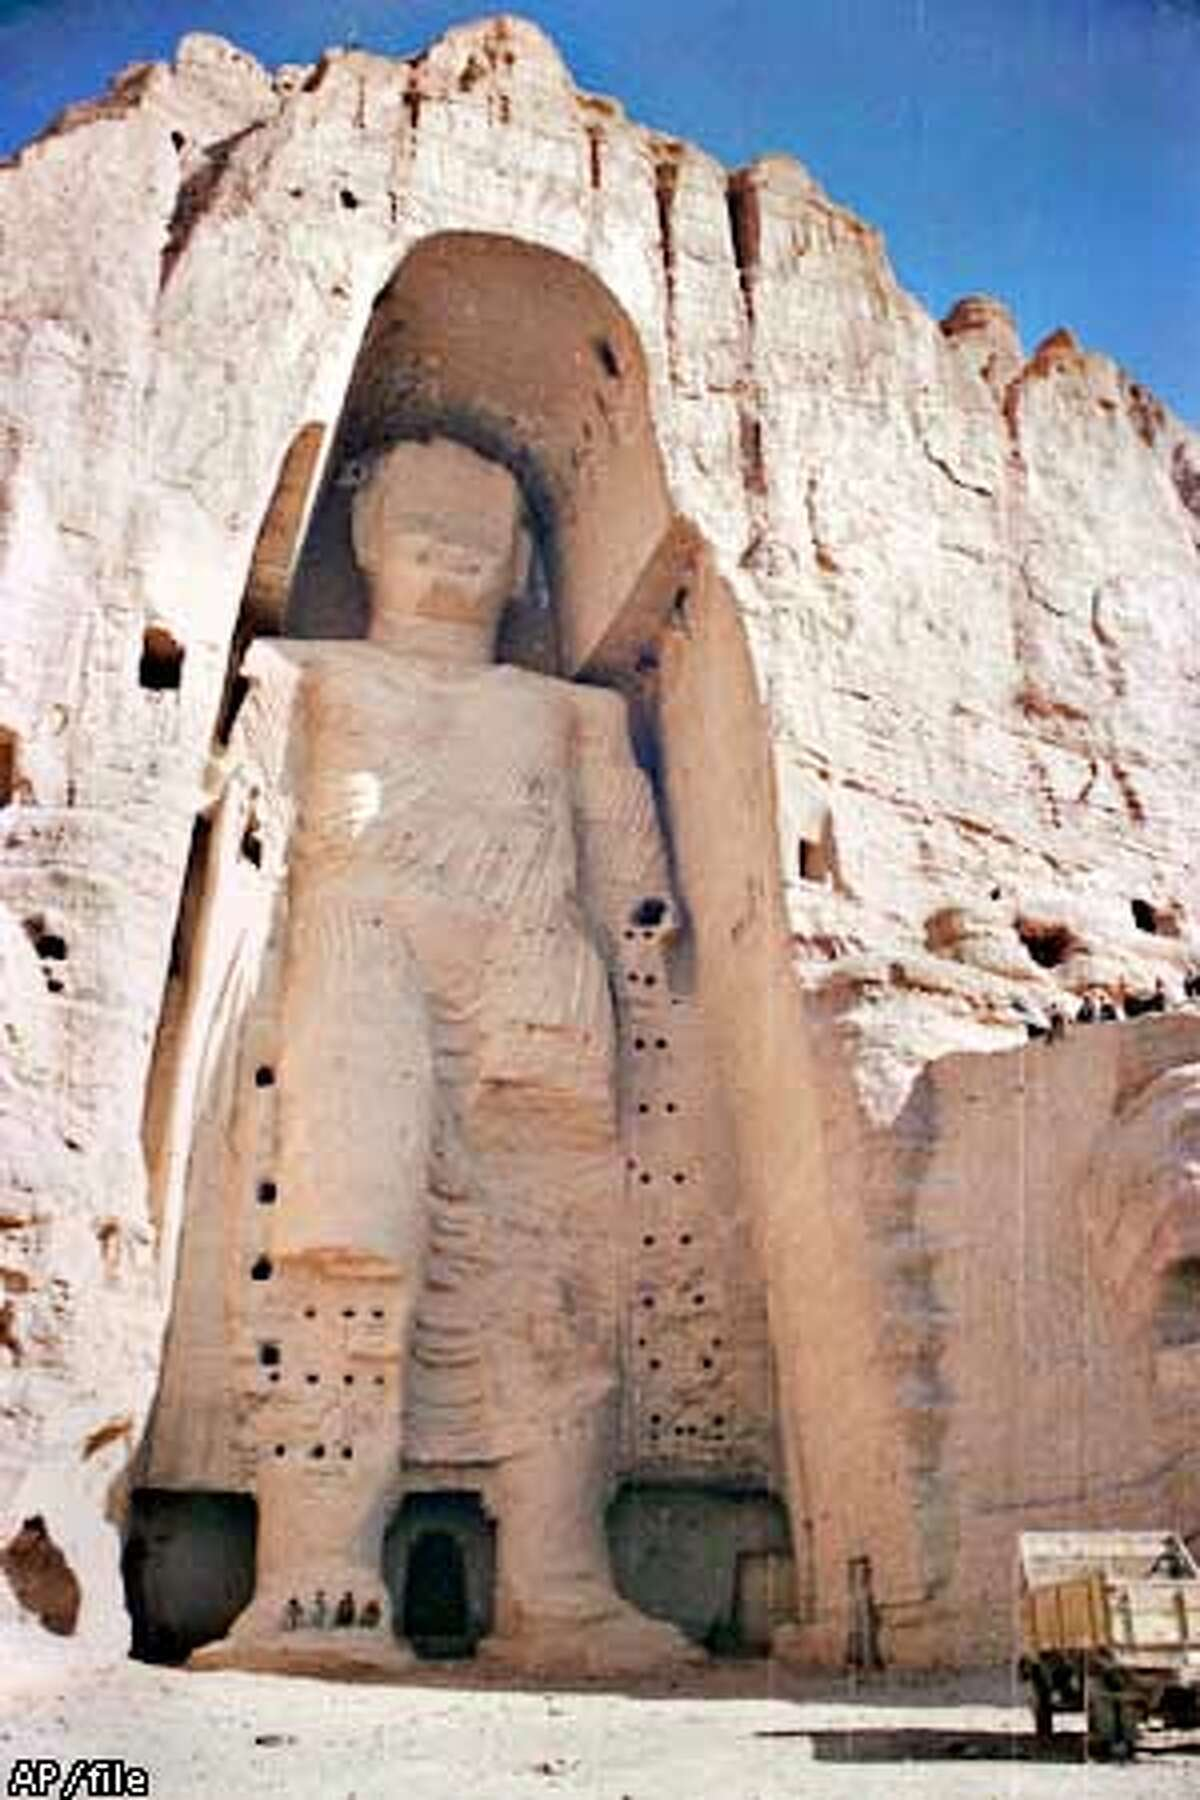 The 53-meter (175-foot) tall, 2000-year-old Buddha statue located in Bamyan, about 150 kilometers (90 miles) west of the Afghan capital Kabul, is shown in this undated photo. Afghanistan's hardline Taliban rulers ordered the destruction, Monday, Feb. 26, 2001 of all statues as insulting Islam, including this world's tallest standing Buddha statue which was already damaged in fightings. (AP Photo) ALSO RAN: 03/09/2001